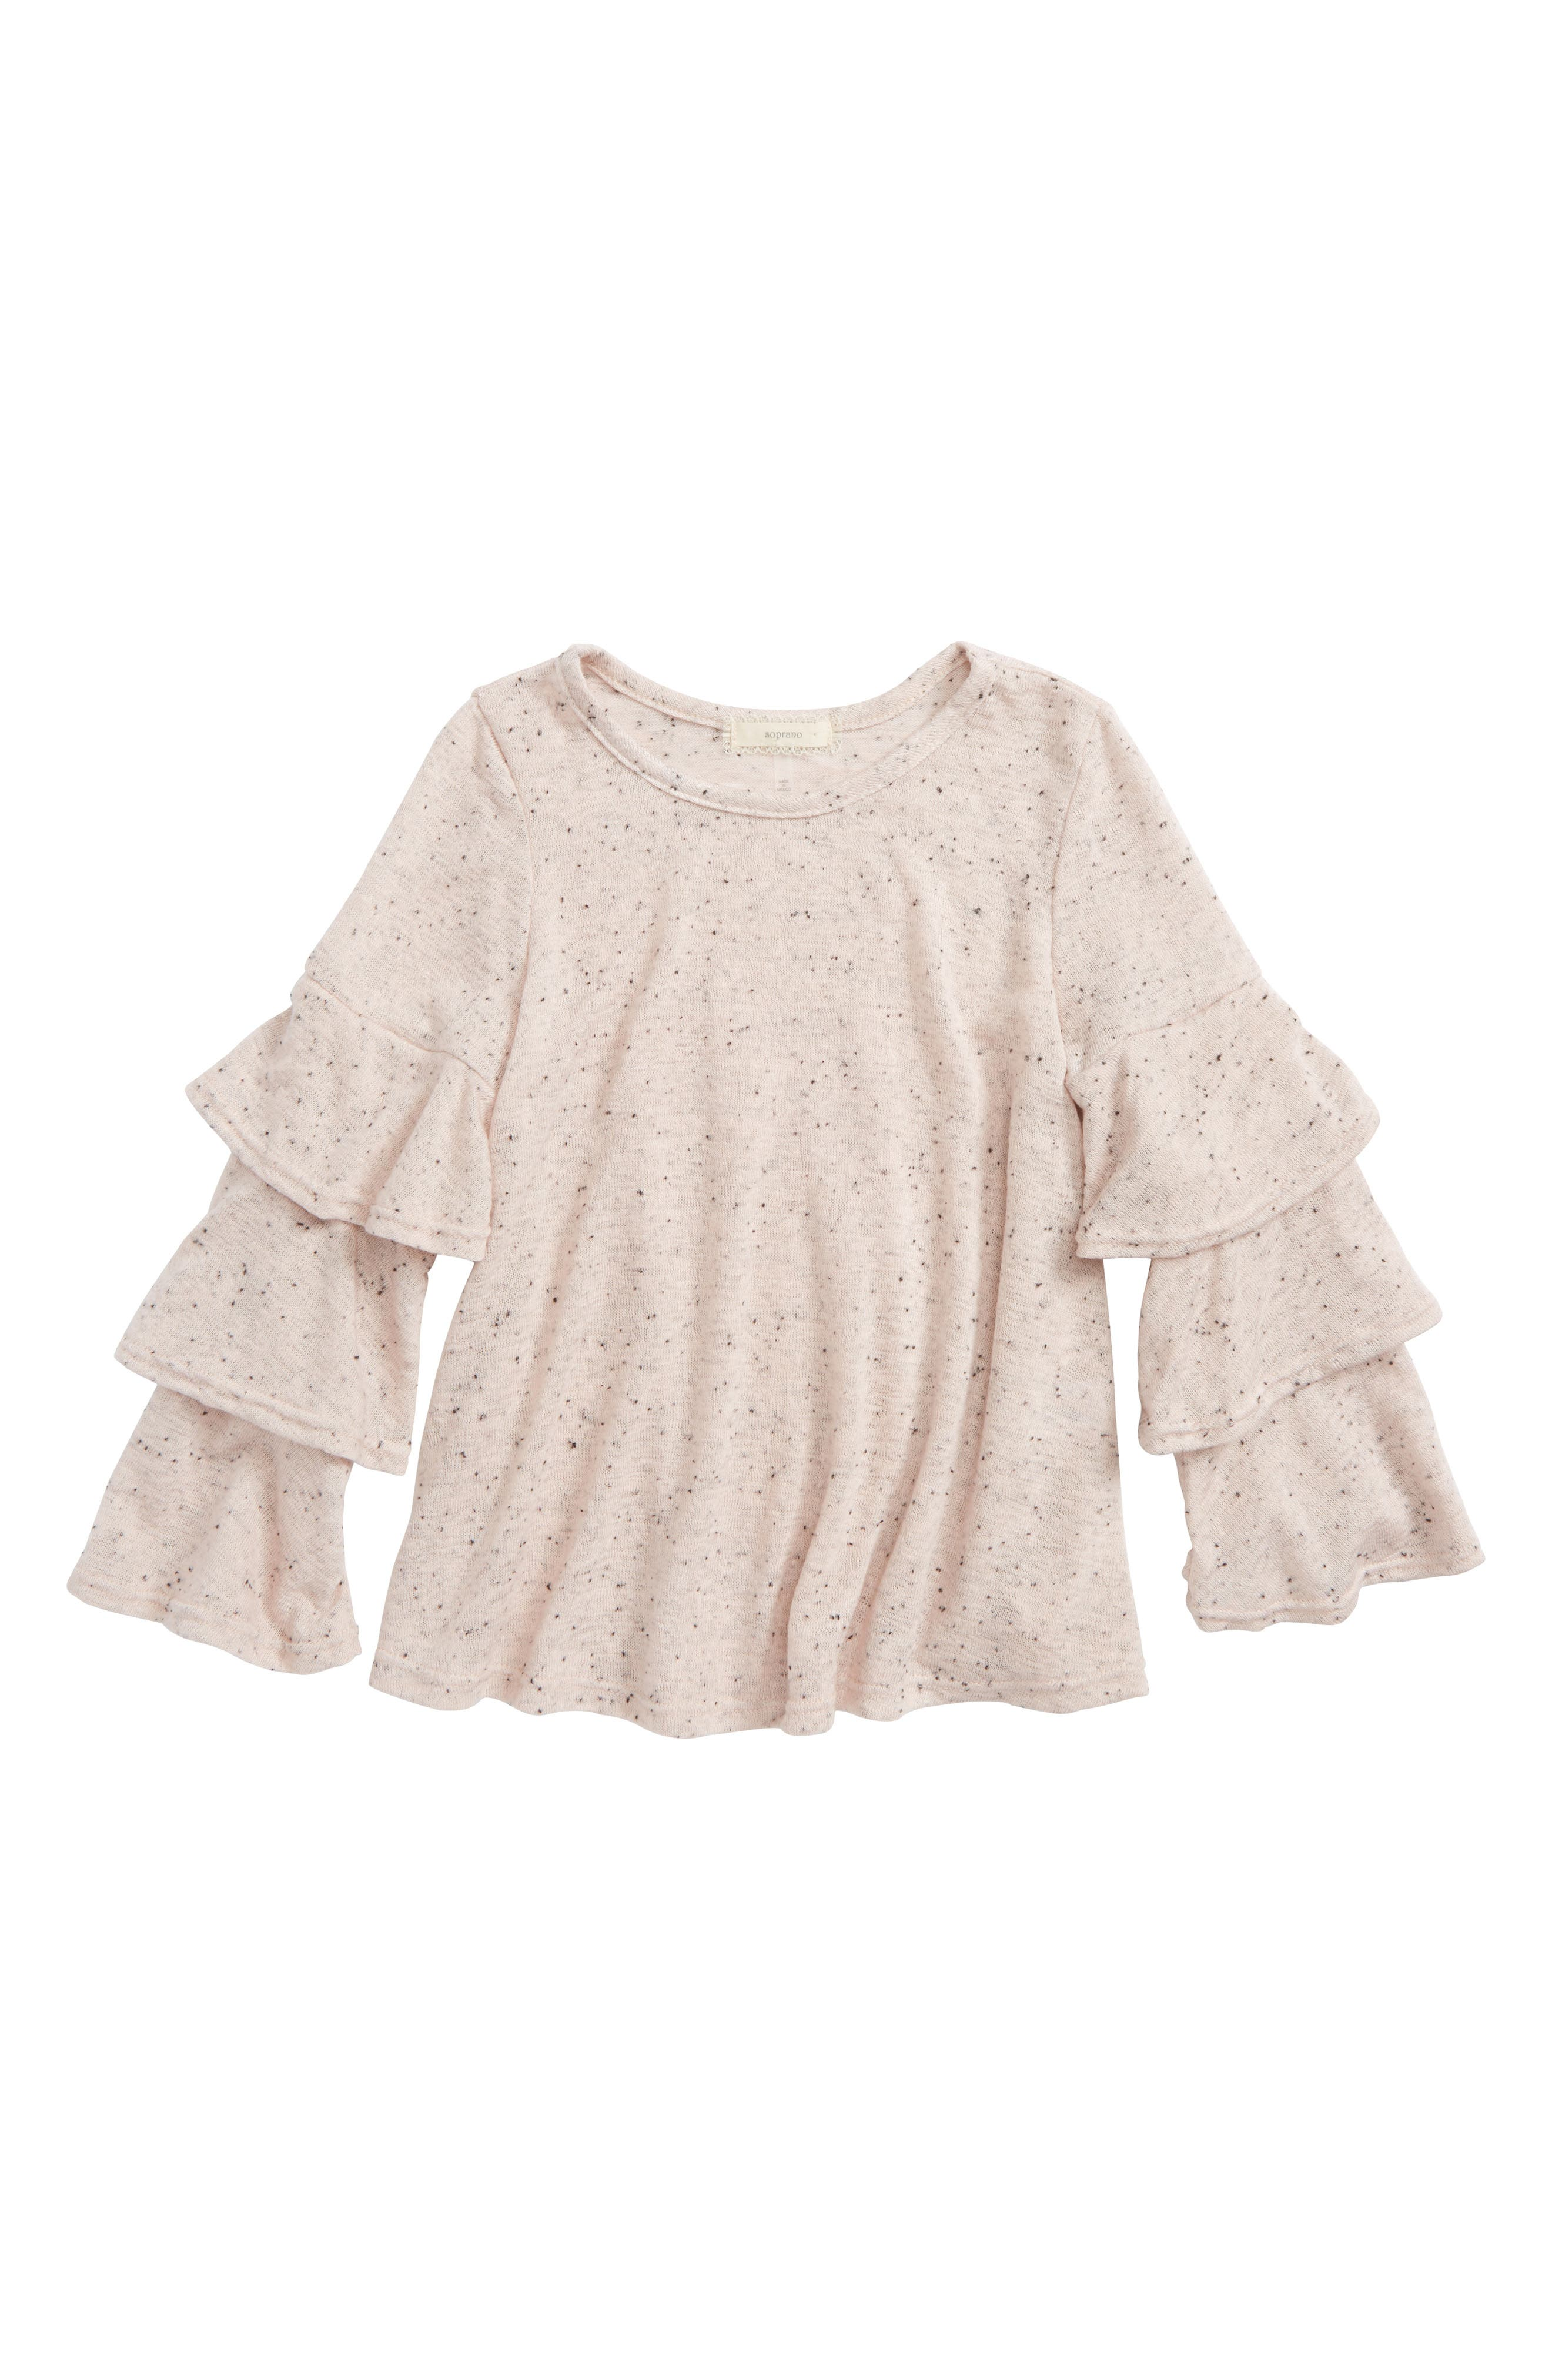 Nep Tiered Sleeve Tee,                         Main,                         color, Blush